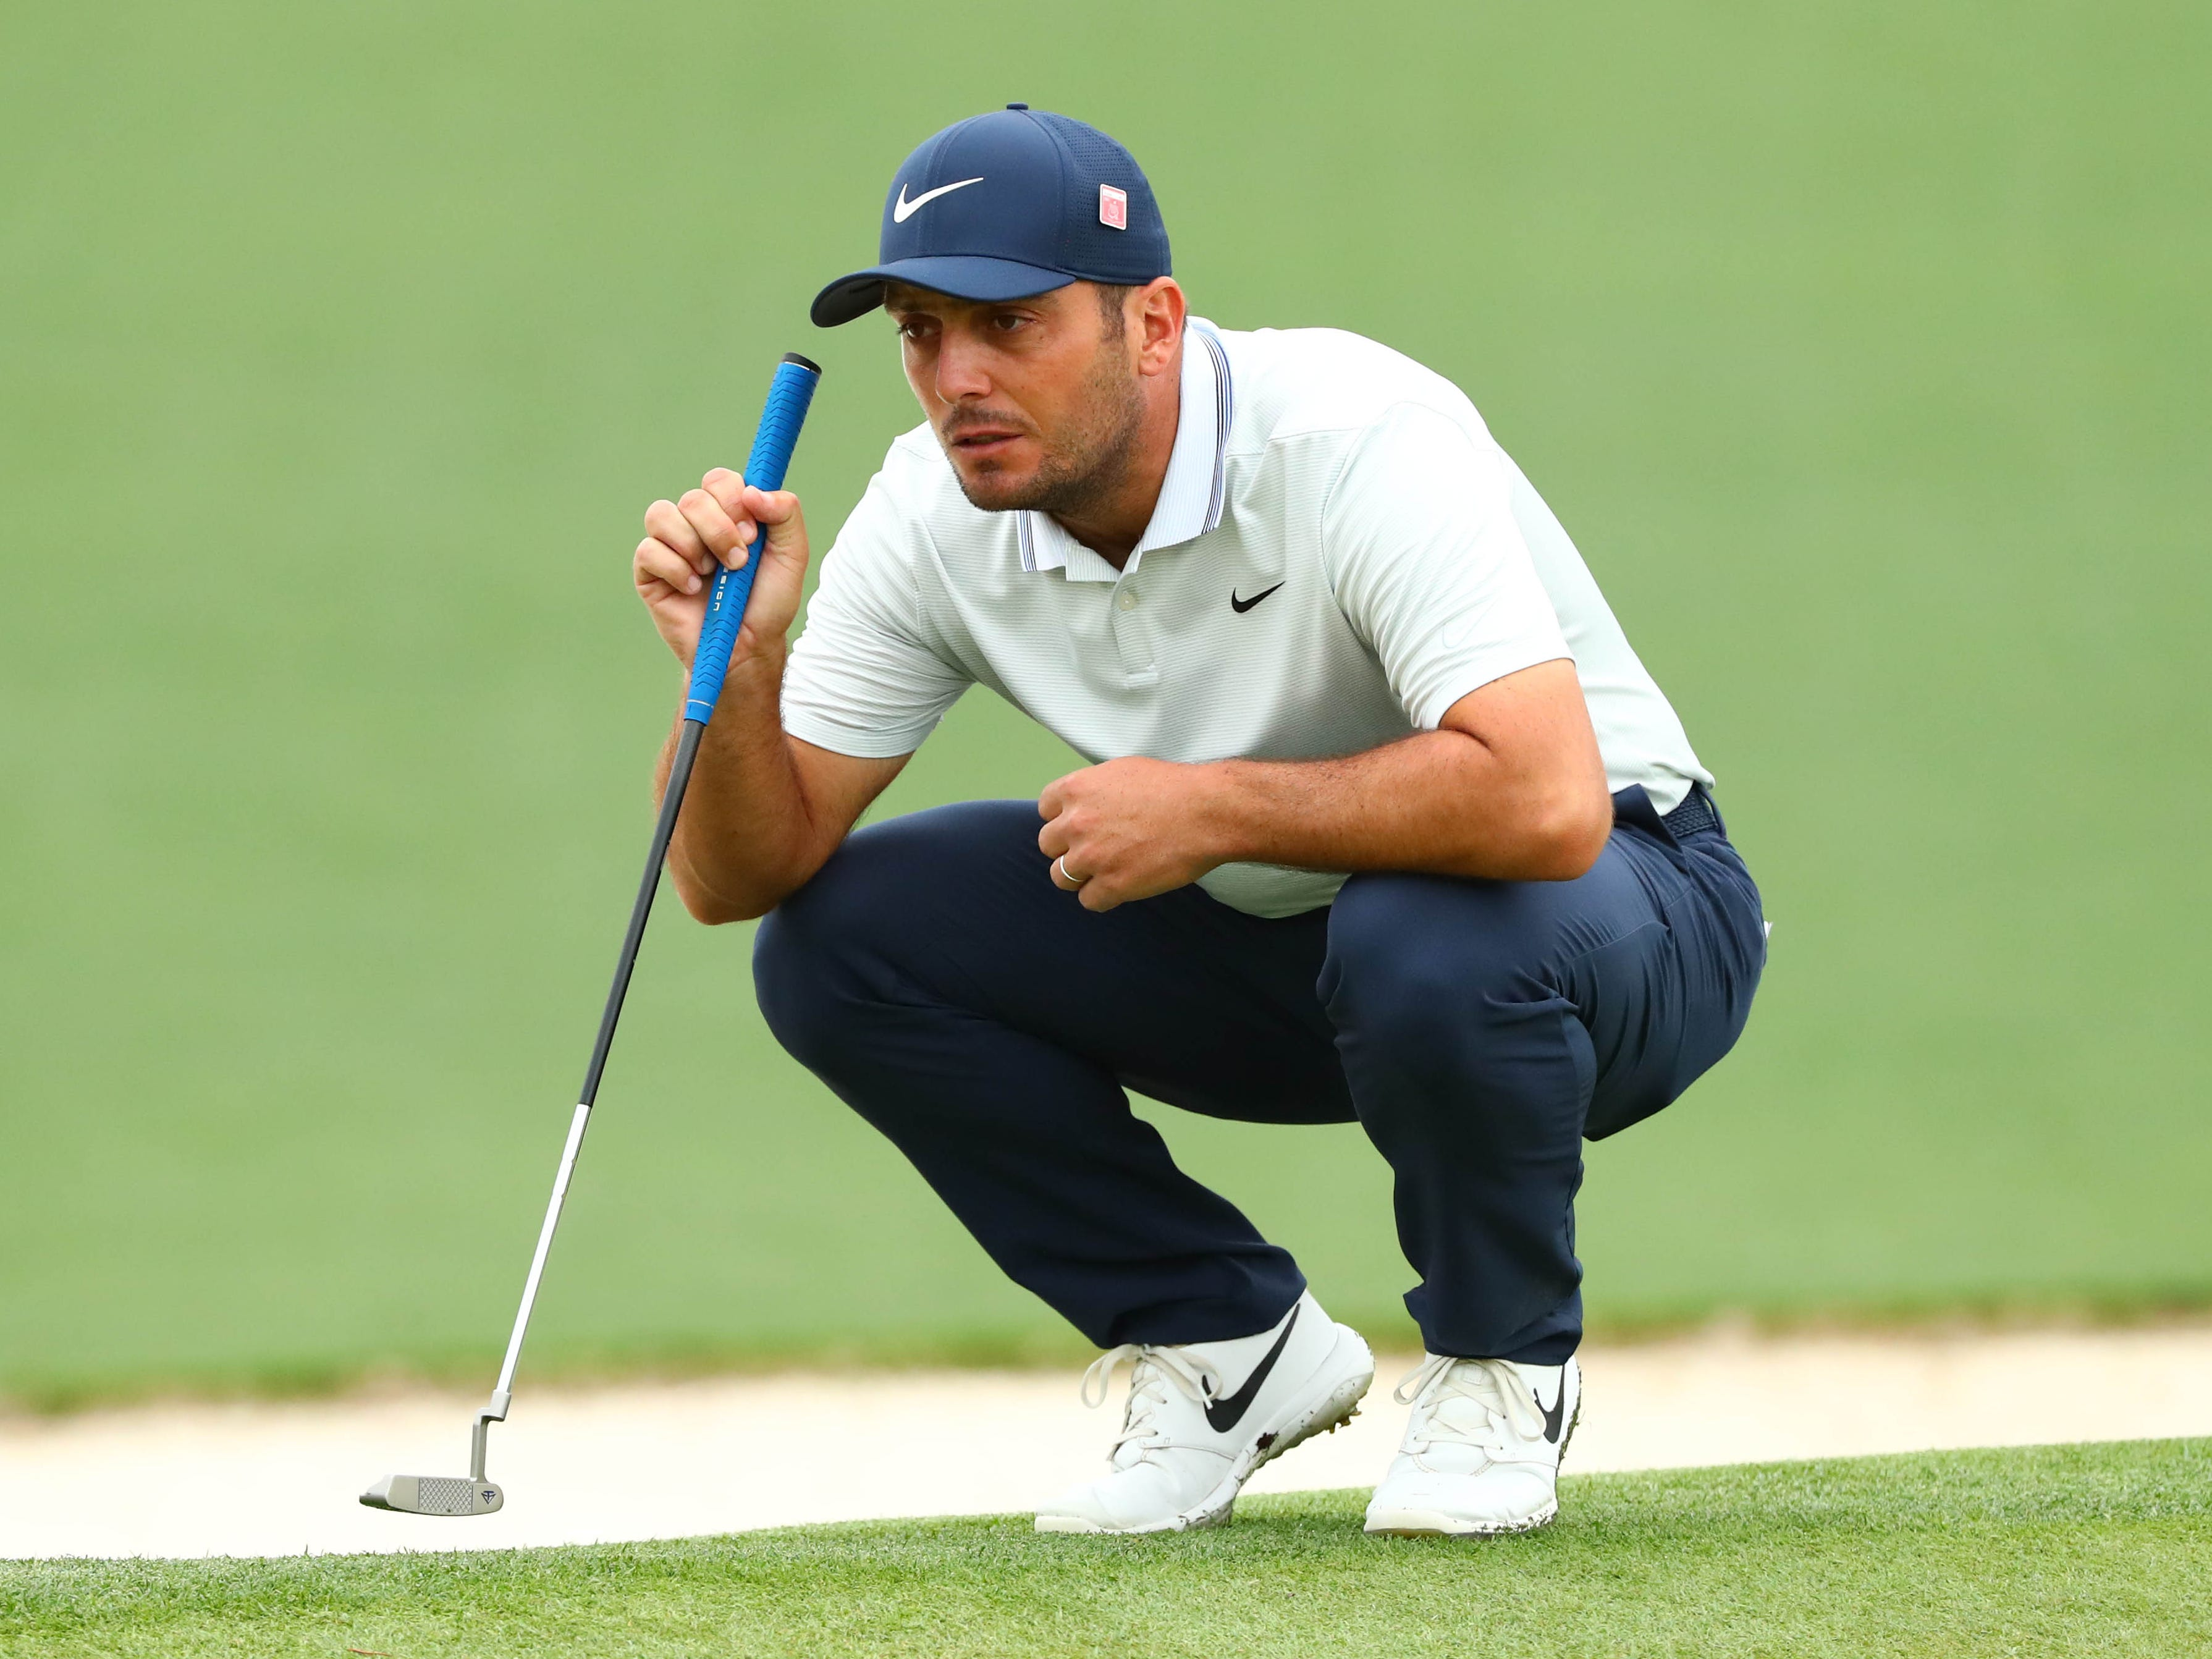 Francesco Molinari lines up a putt on the second green during the final round.